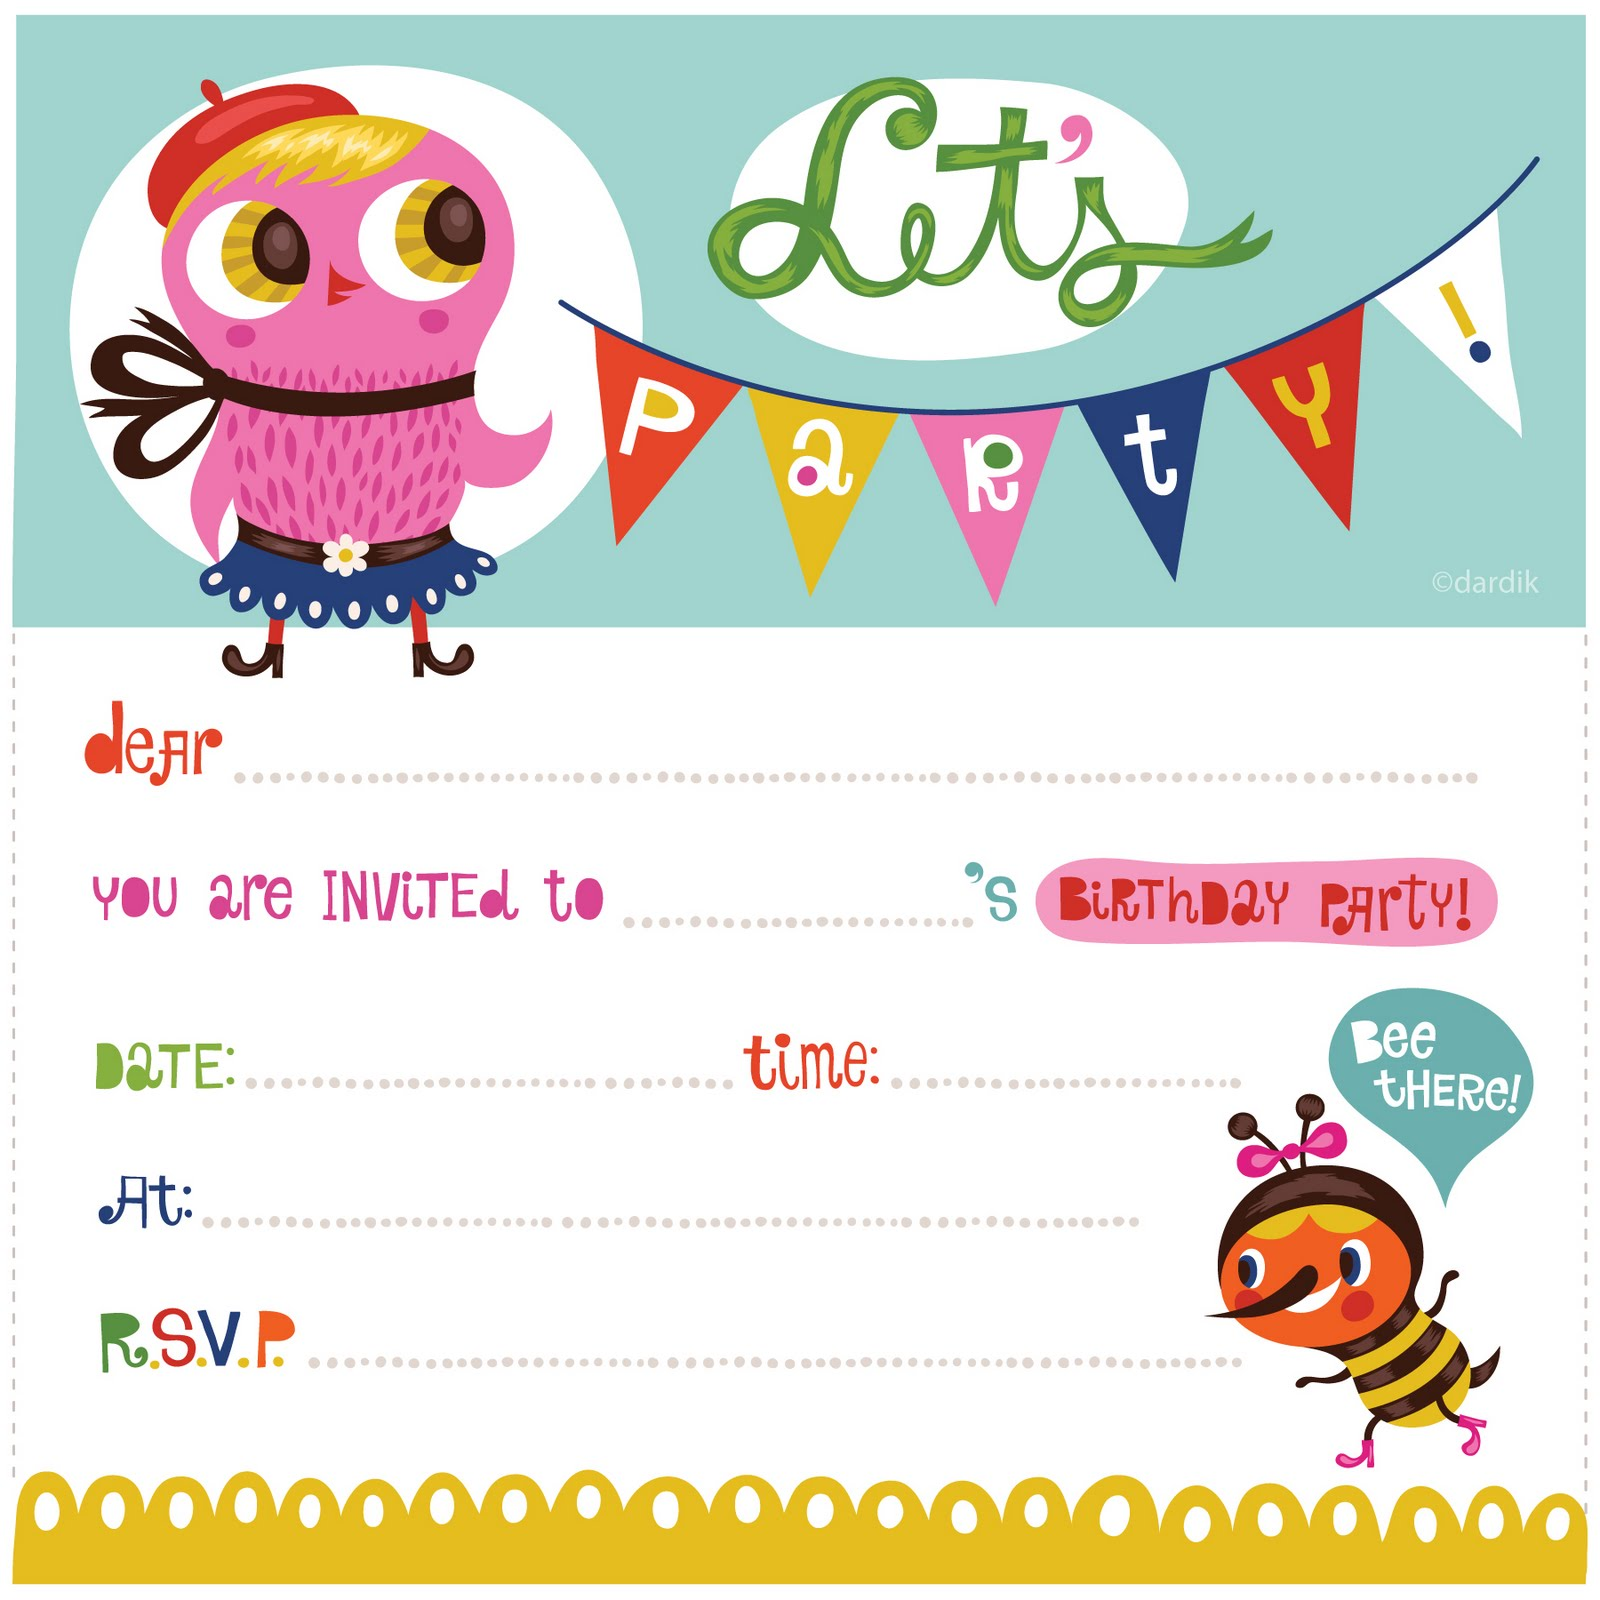 Birthday invitations templates free for kids acurnamedia birthday invitations templates free for kids filmwisefo